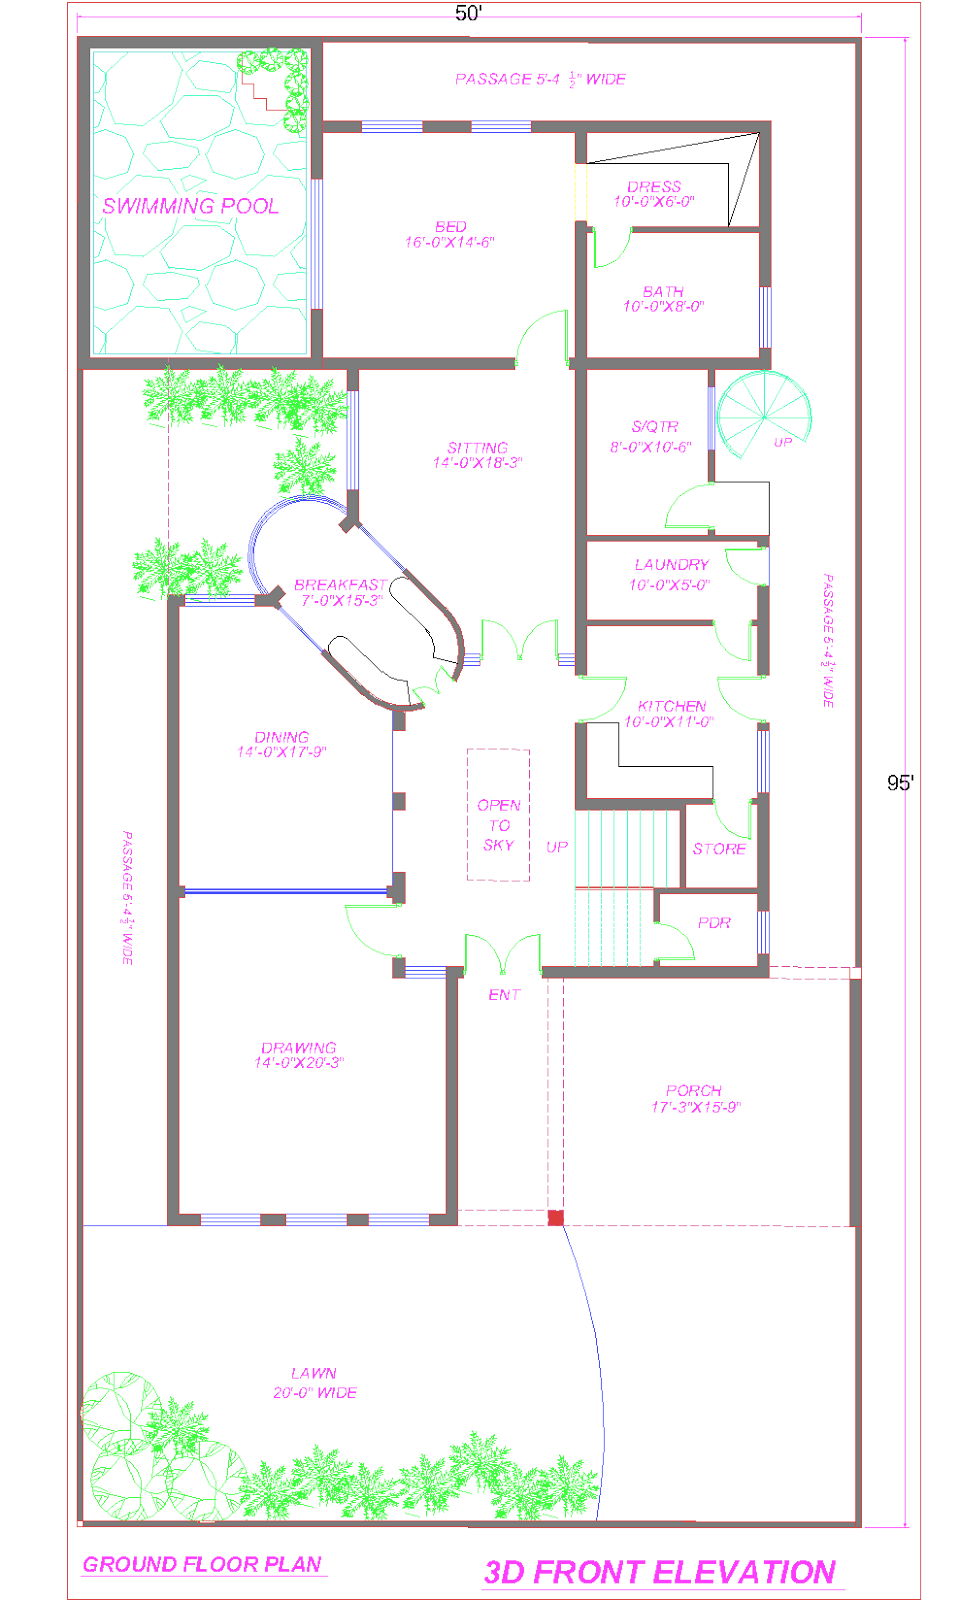 1 Kanal Ground Floor Plan With Swiming Pool Png 960 1600 House Plans How To Plan Bedroom House Plans